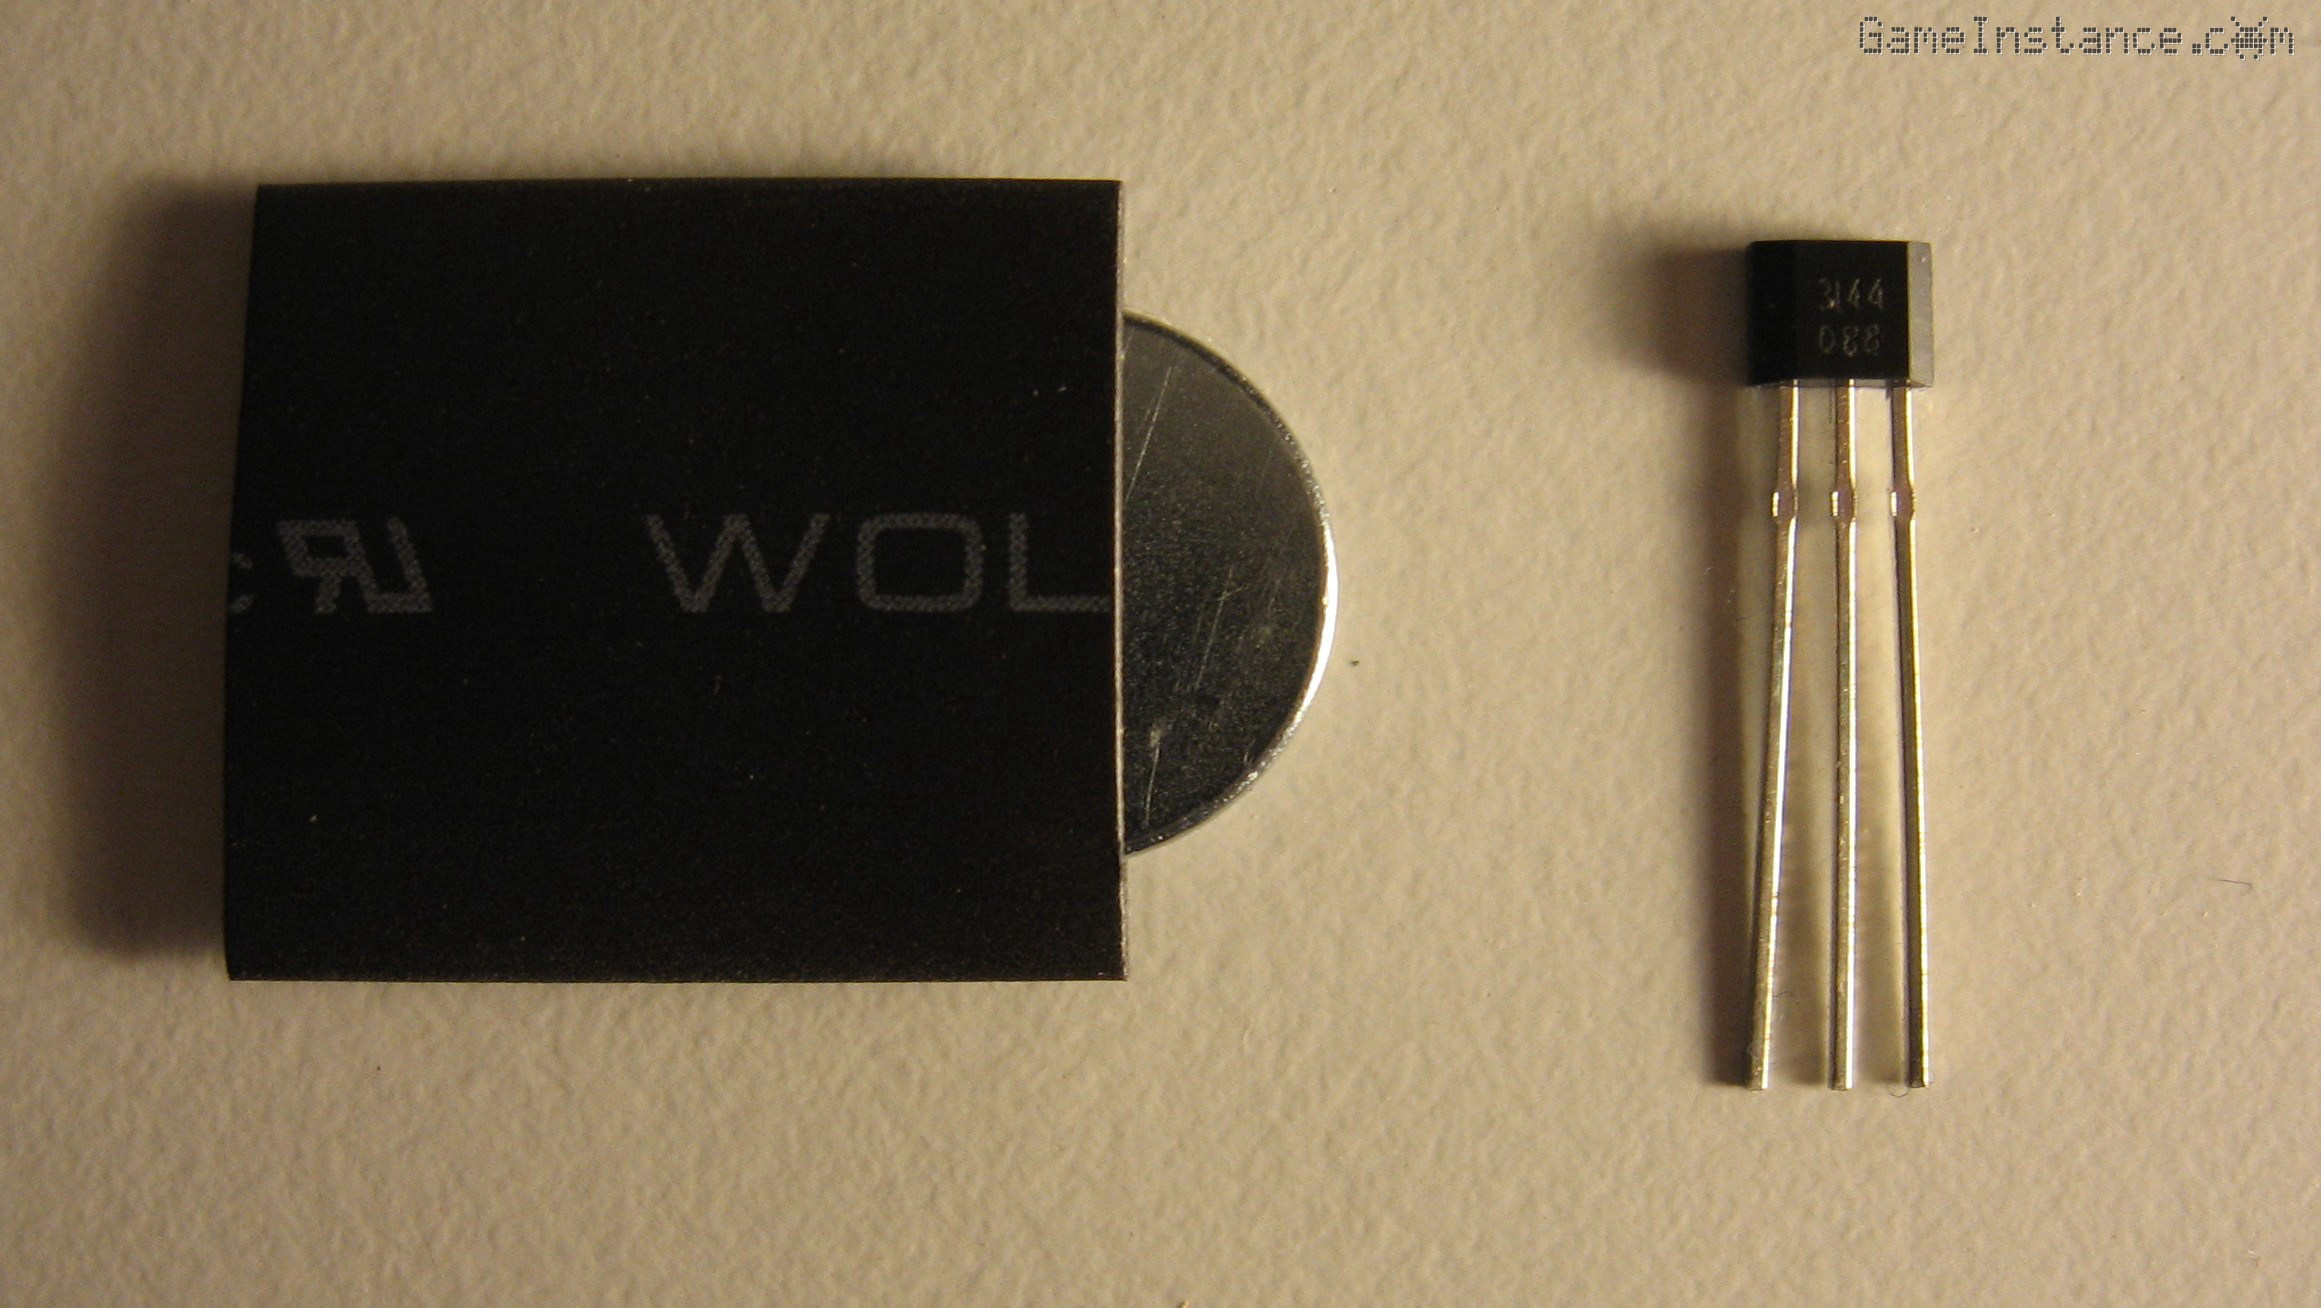 UV-Box 400 - Hall effect sensor and magnet to be used for detecting lid openings.